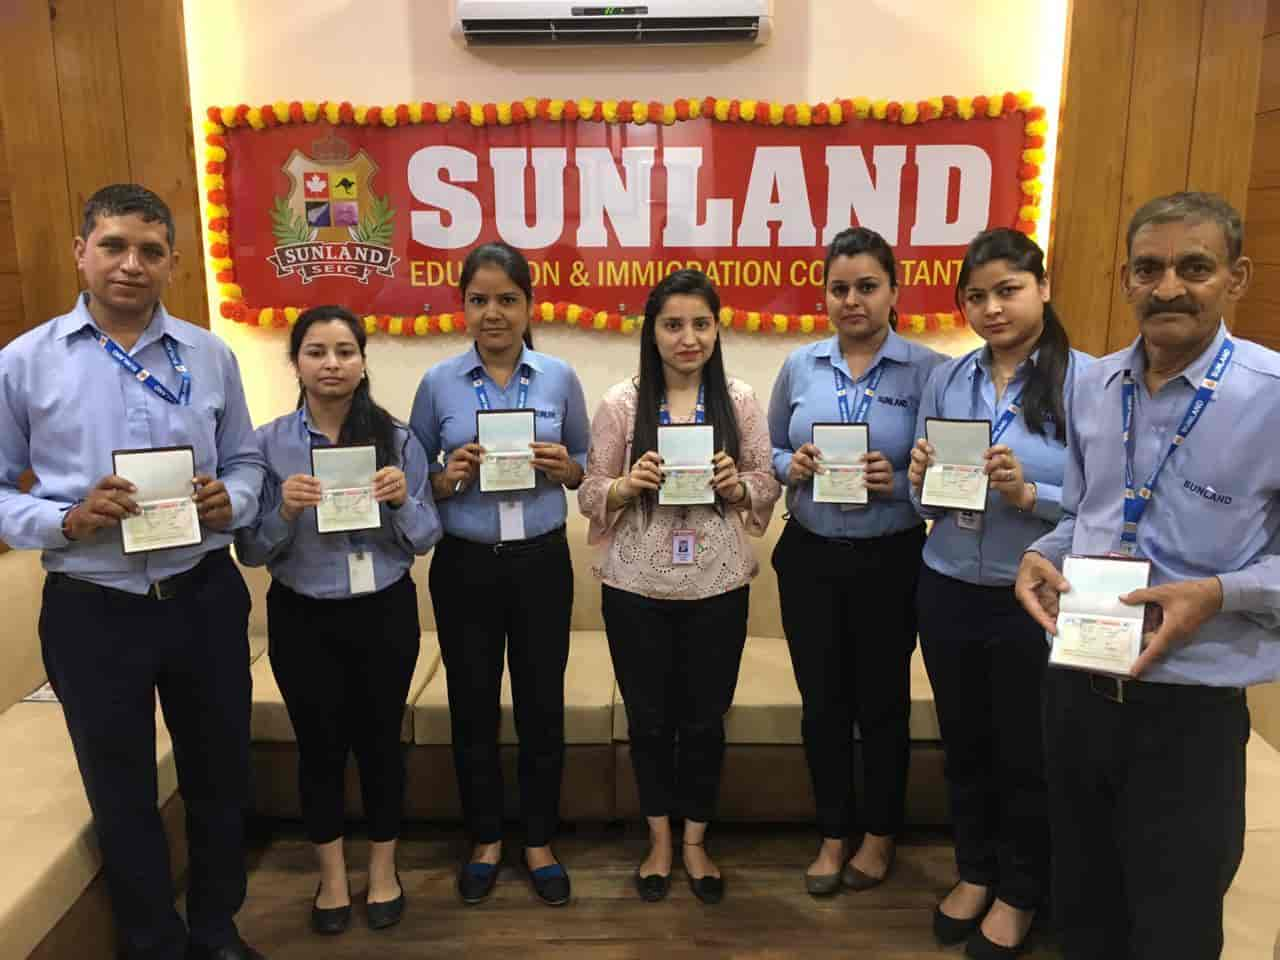 Sunland Education & Immigration Consultancy, Ambala City - Institutes For  IELTS in Ambala - Justdial